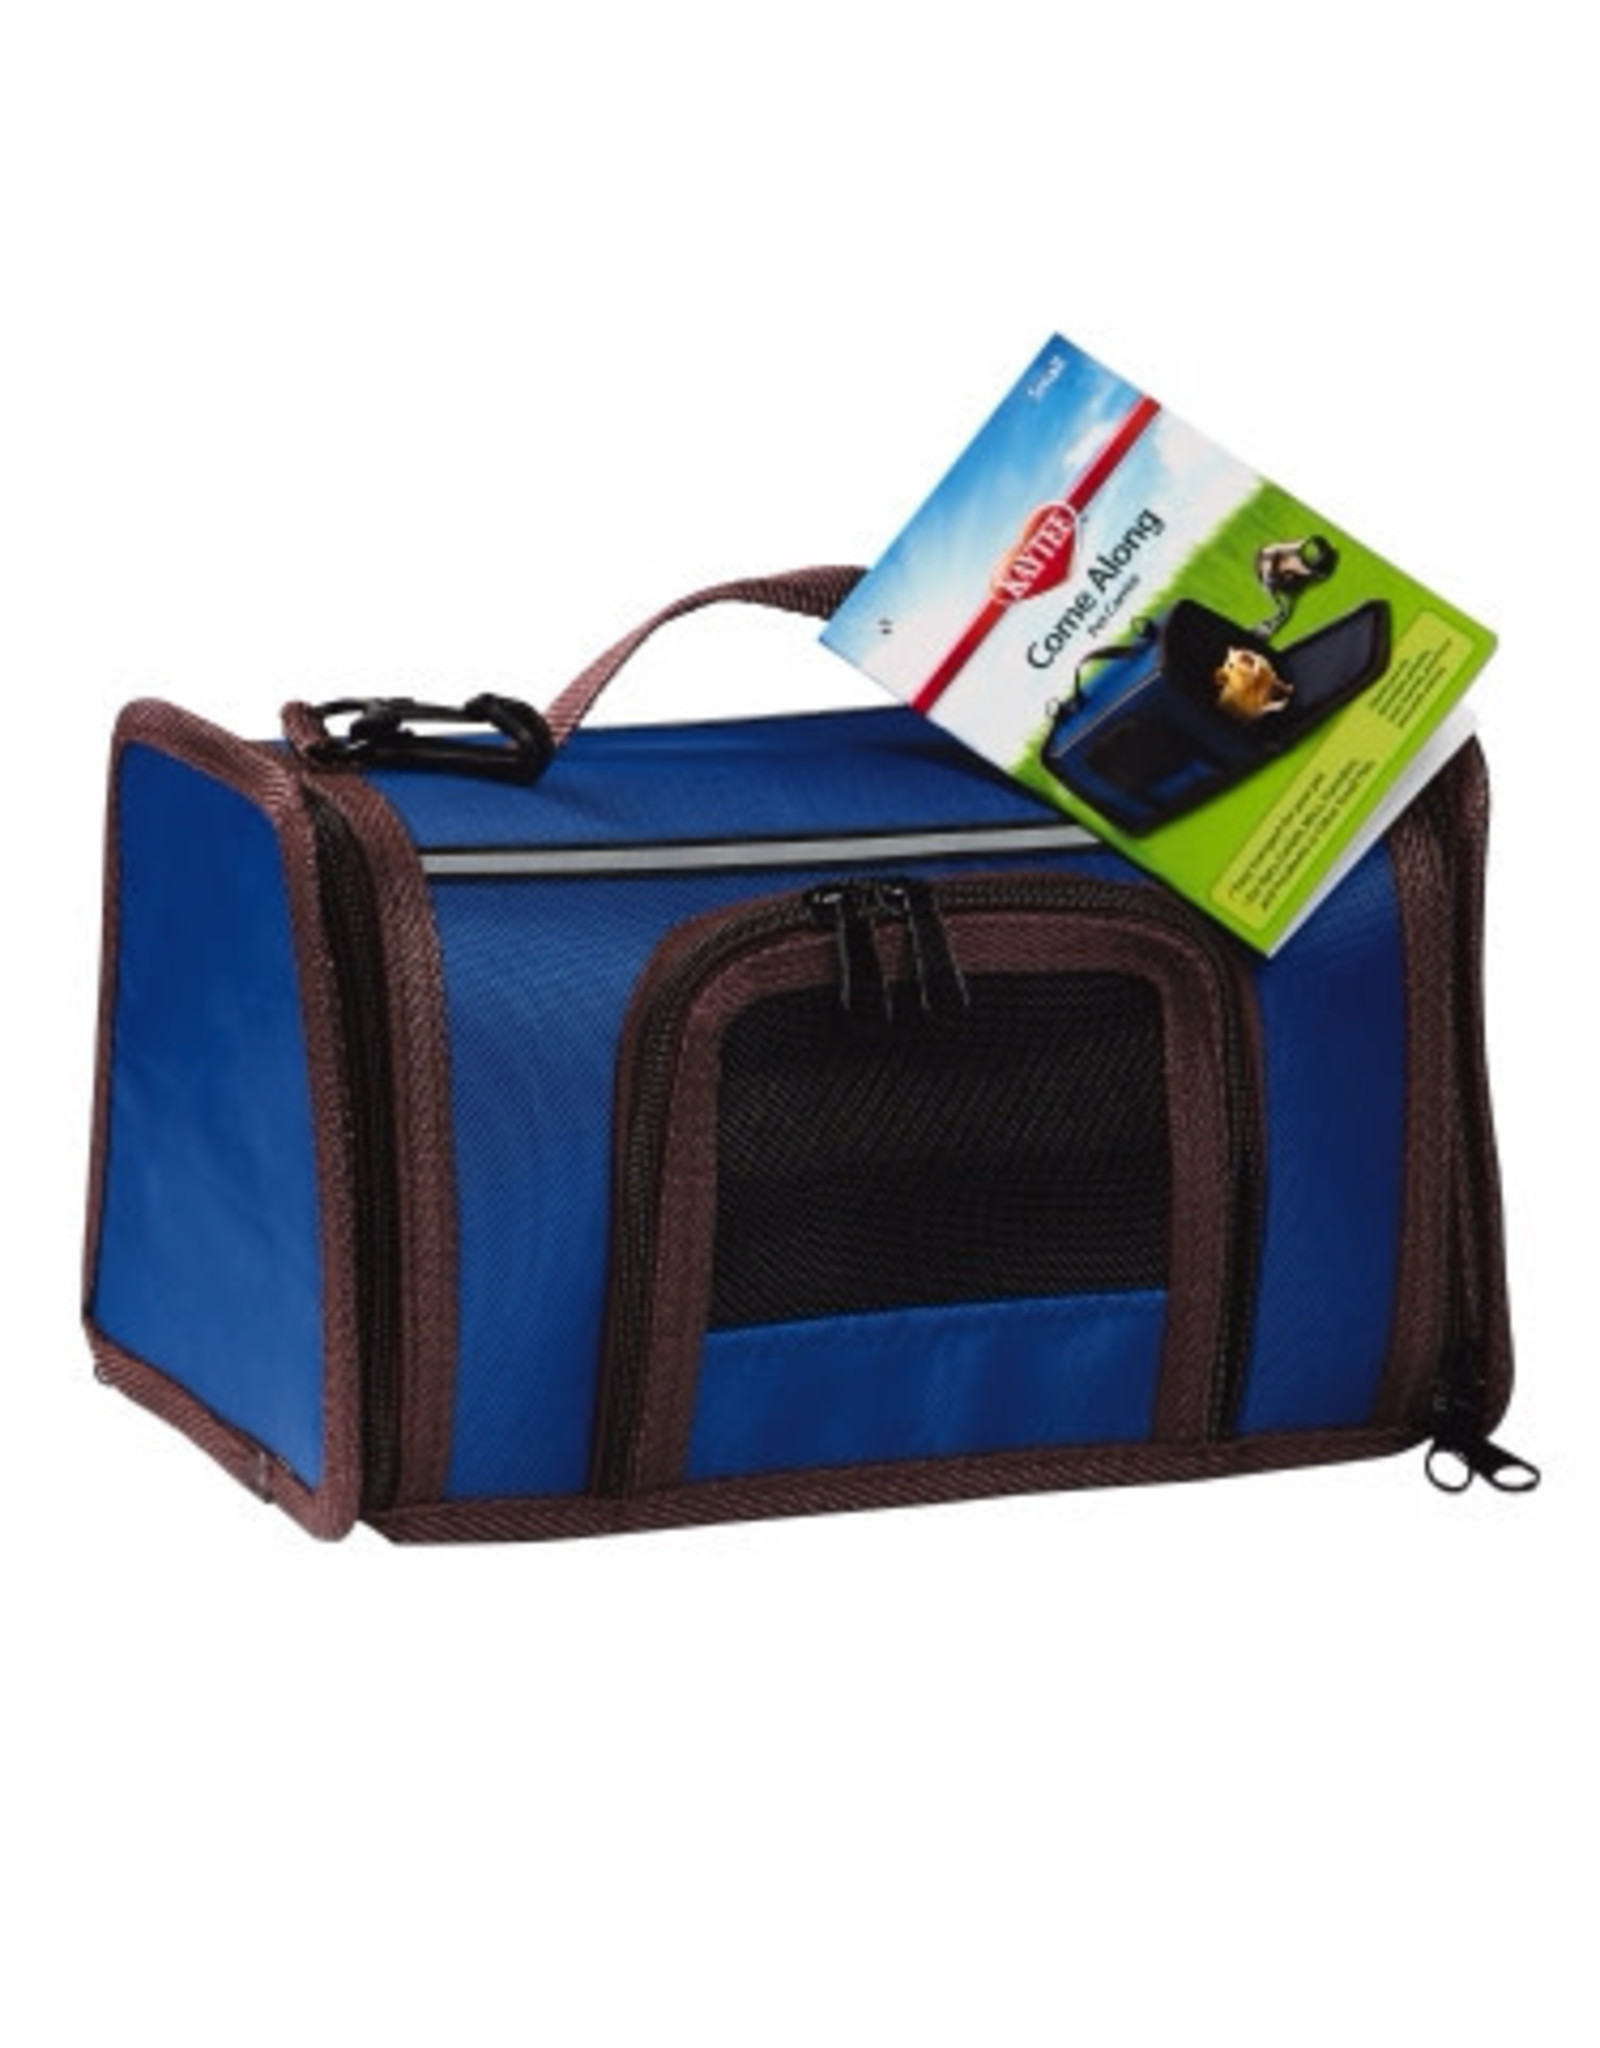 Kaytee Come Along Carrier - Assorted - Small